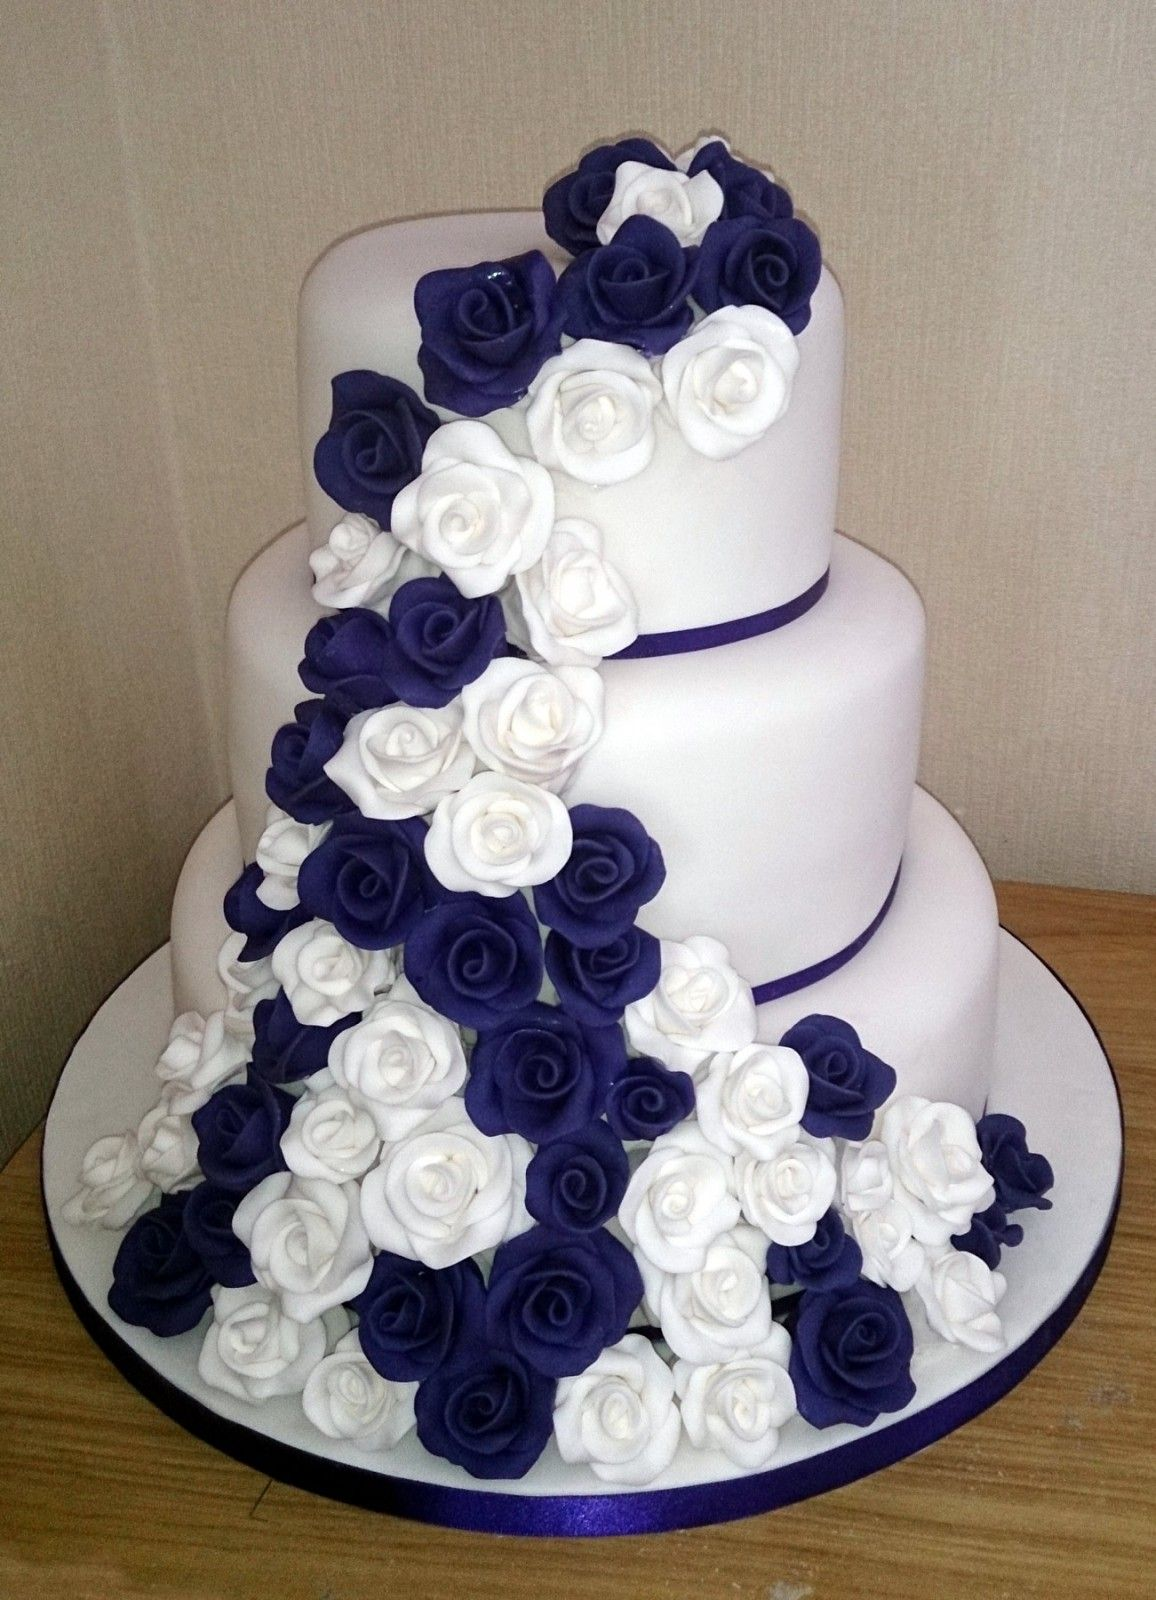 3 Tier White And Purple Rose Wedding Cake Royal Blue Wedding Cakes Wedding Cake Red Wedding Cake Roses